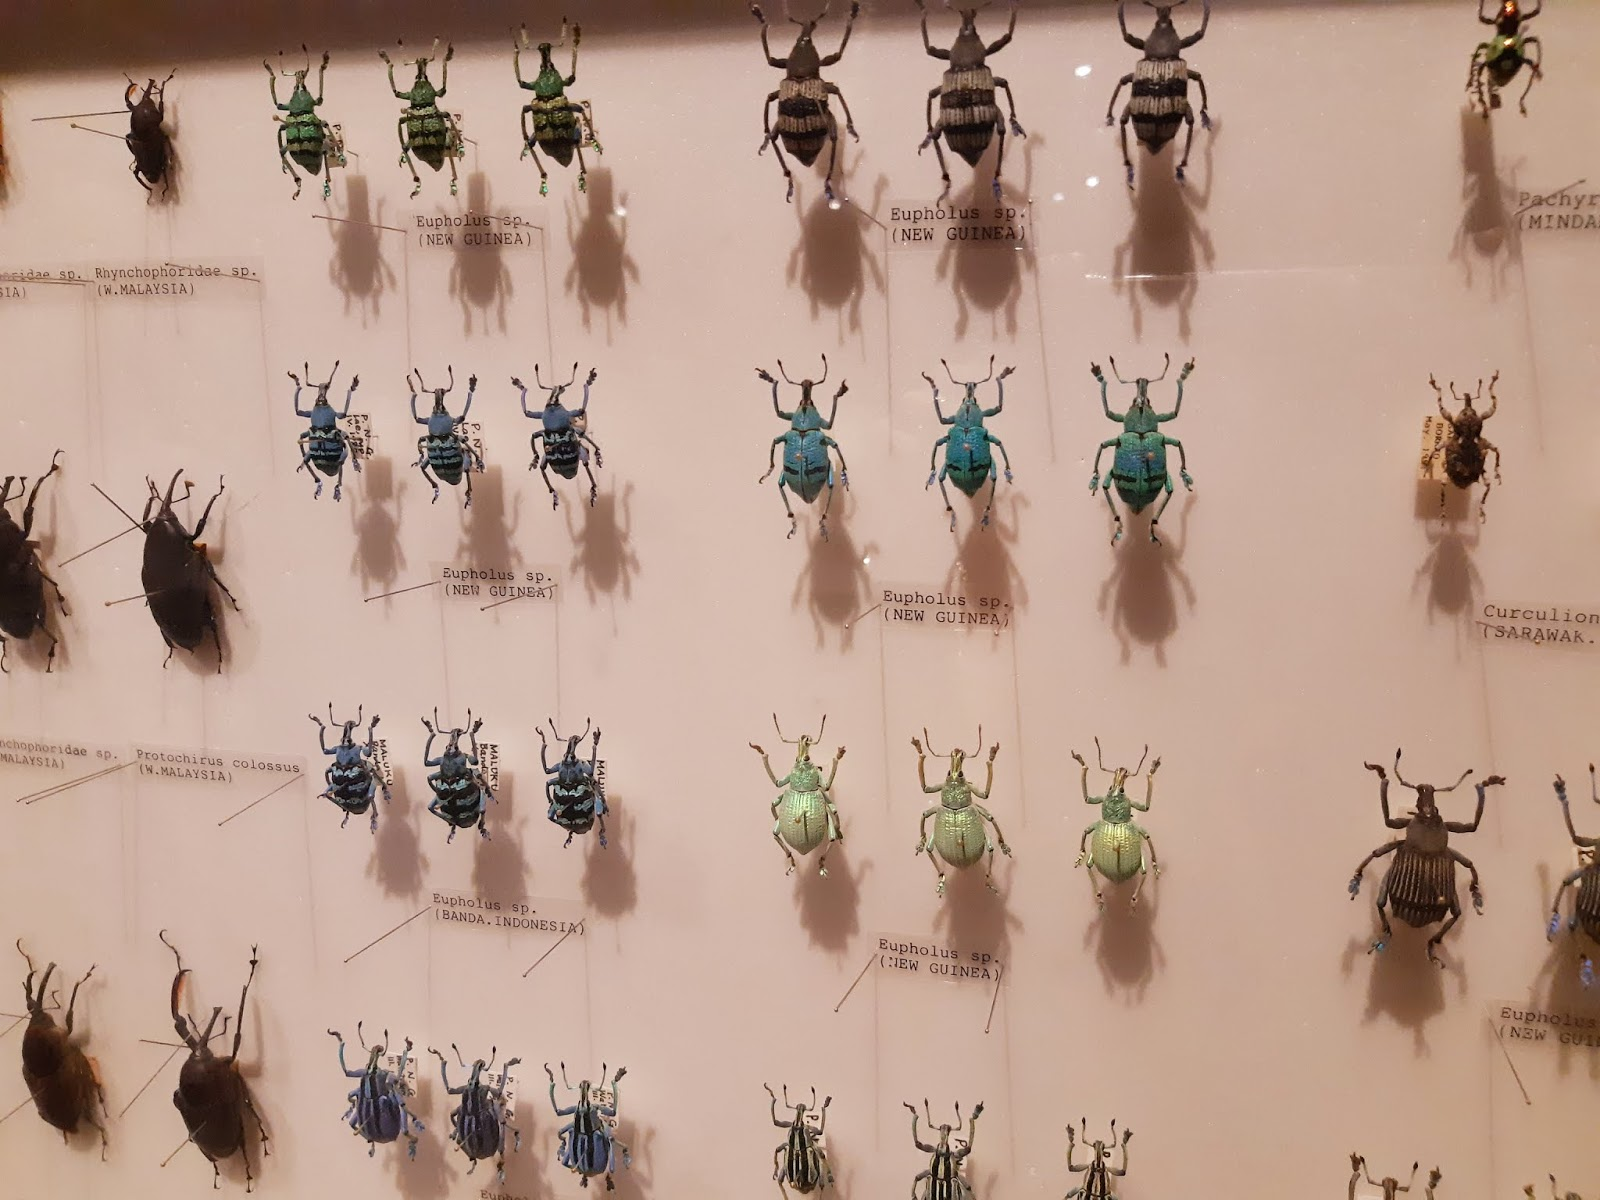 Thearcticstars Tales Media Invite Review On Butterfly Park Tiket Insect Kingdom Moving There Is Also A Stunning Display Of Beetles Preserved And Made Into Art Pieces Around The Museum Within Itself